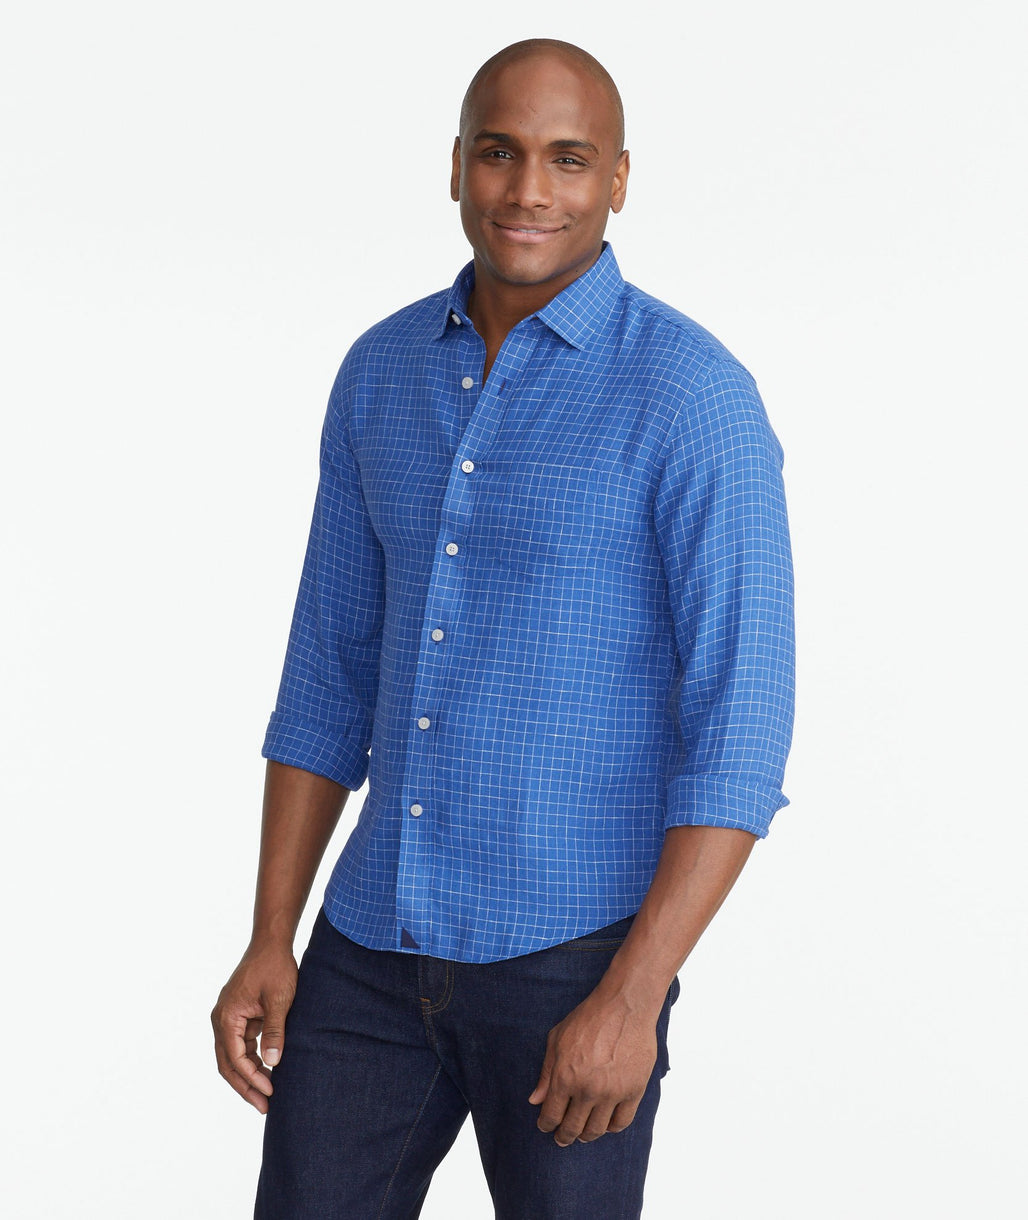 A model wearing a Blue Wrinkle-Resistant Linen Piave Shirt